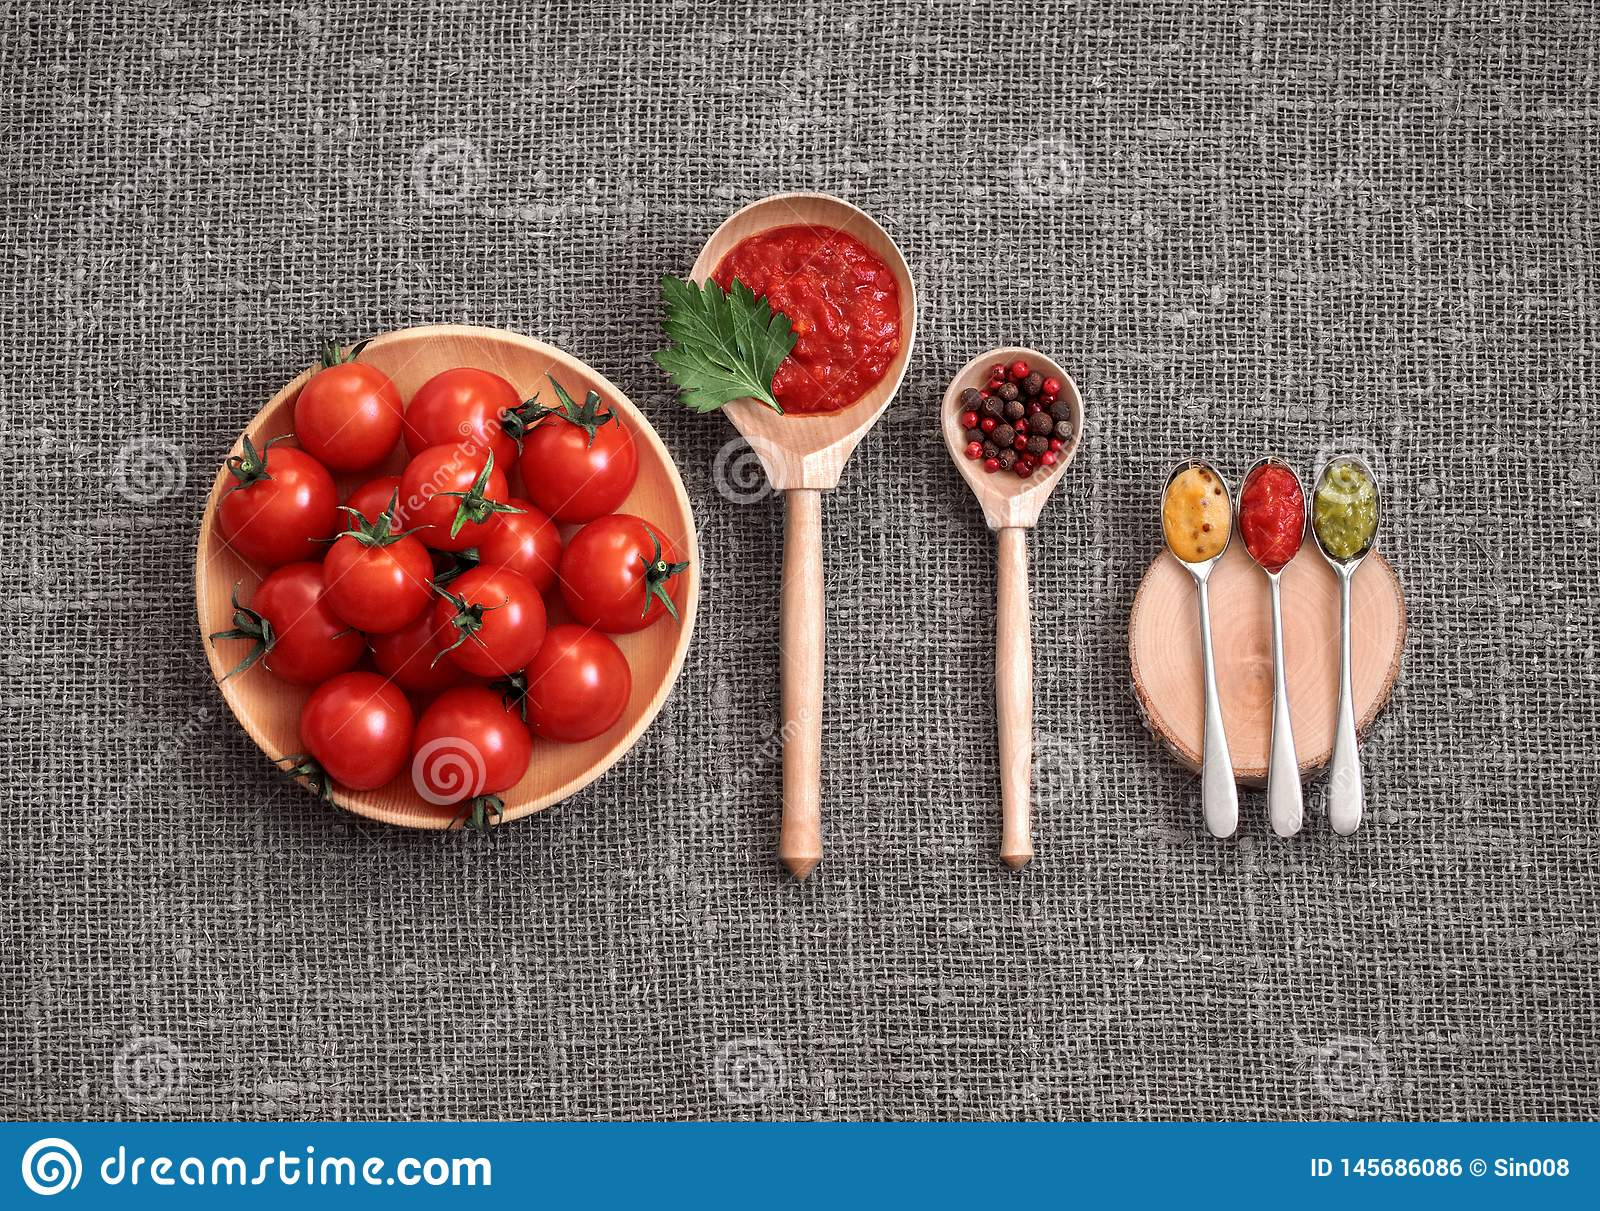 Cherry tomatoes in a wooden plate on a gray background. Adjika sauce, red and black pepper, parsley, mustard and pesto in spoons